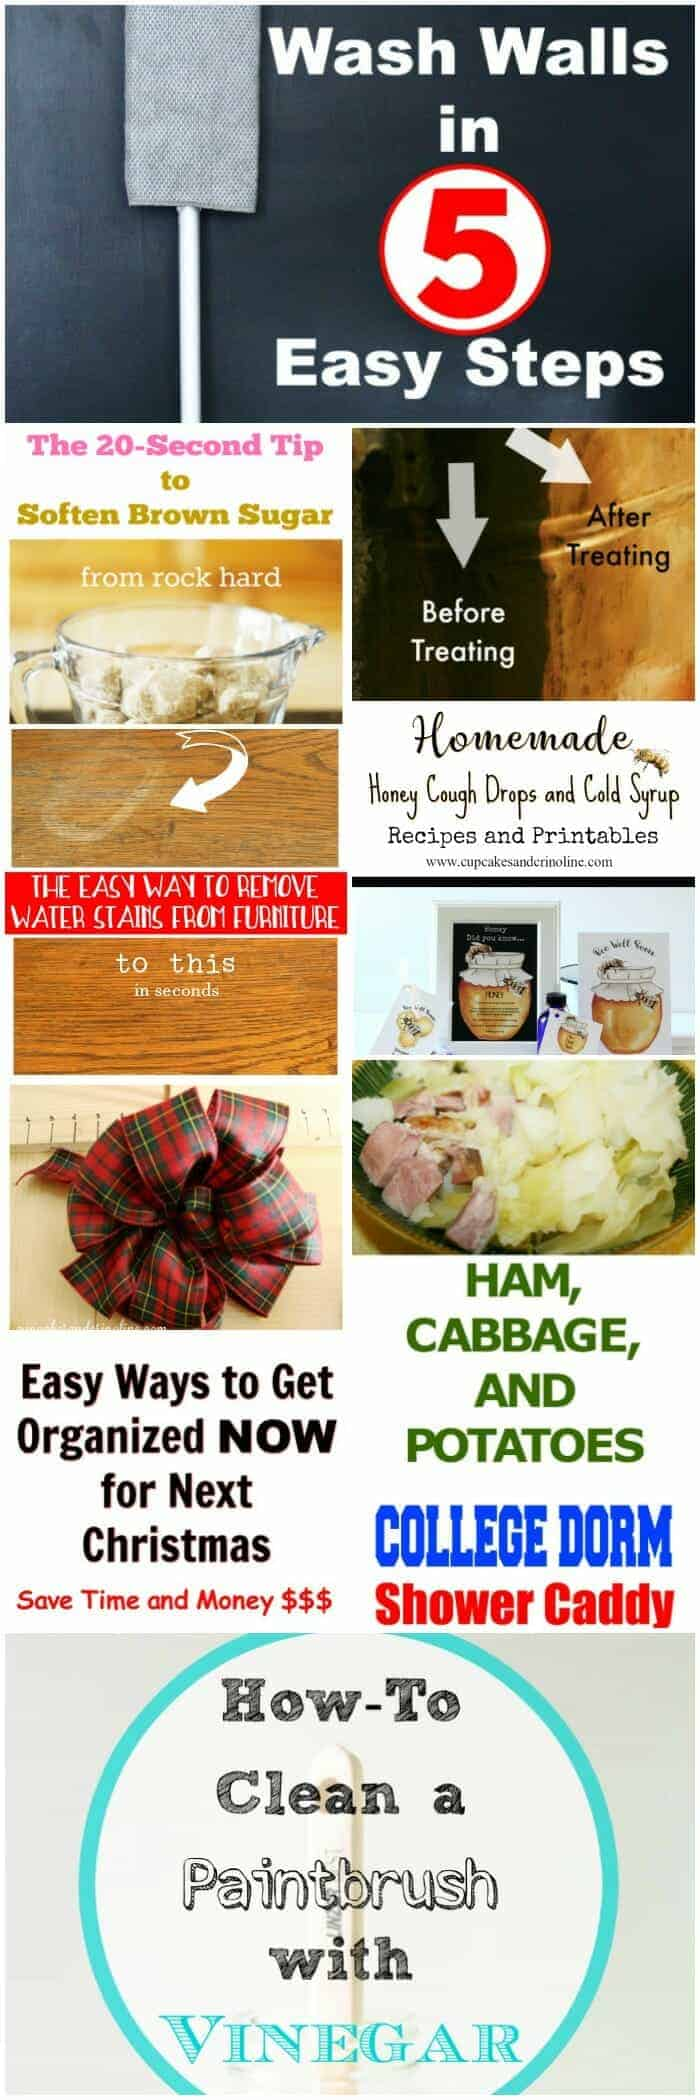 Top 10 Posts of 2017 from Home with Cupcakes and Crinoline